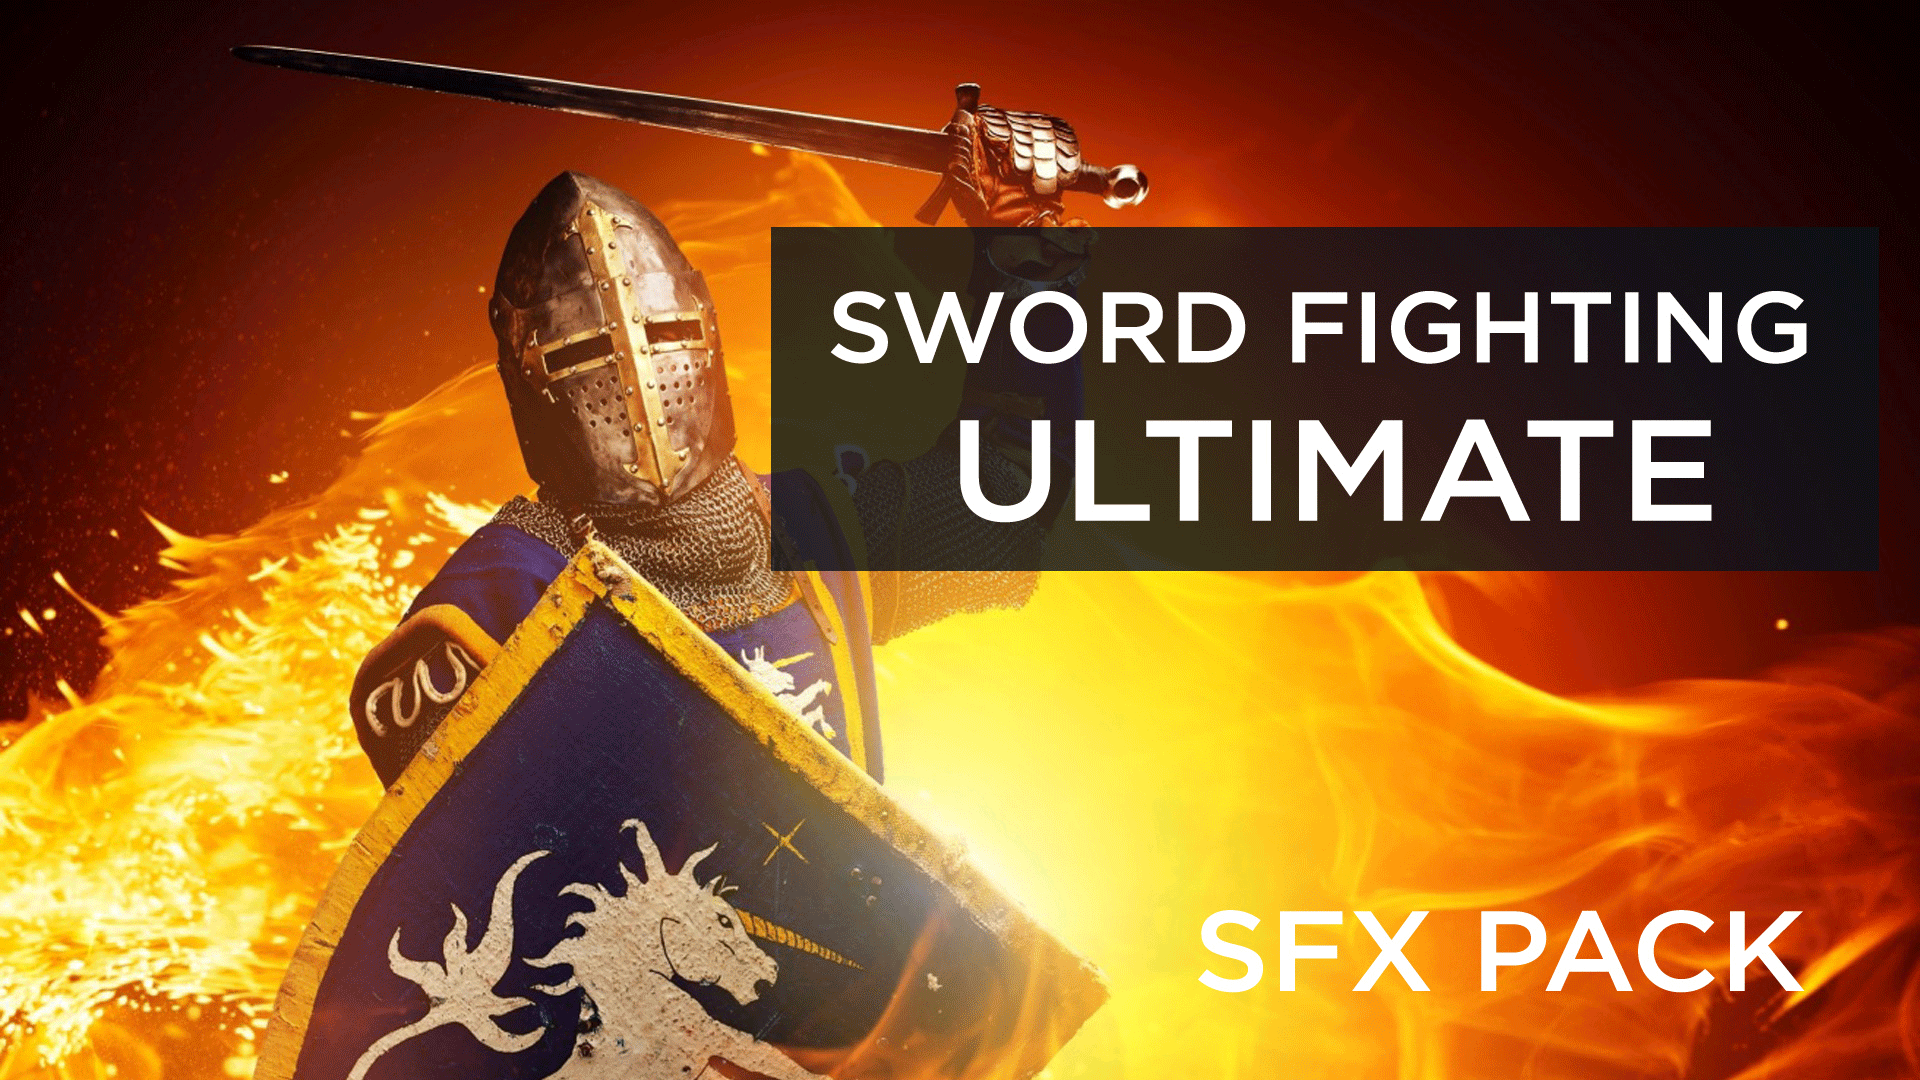 Sword Fighting Ultimate Sfx By Indiegamemodels In Sound Fx